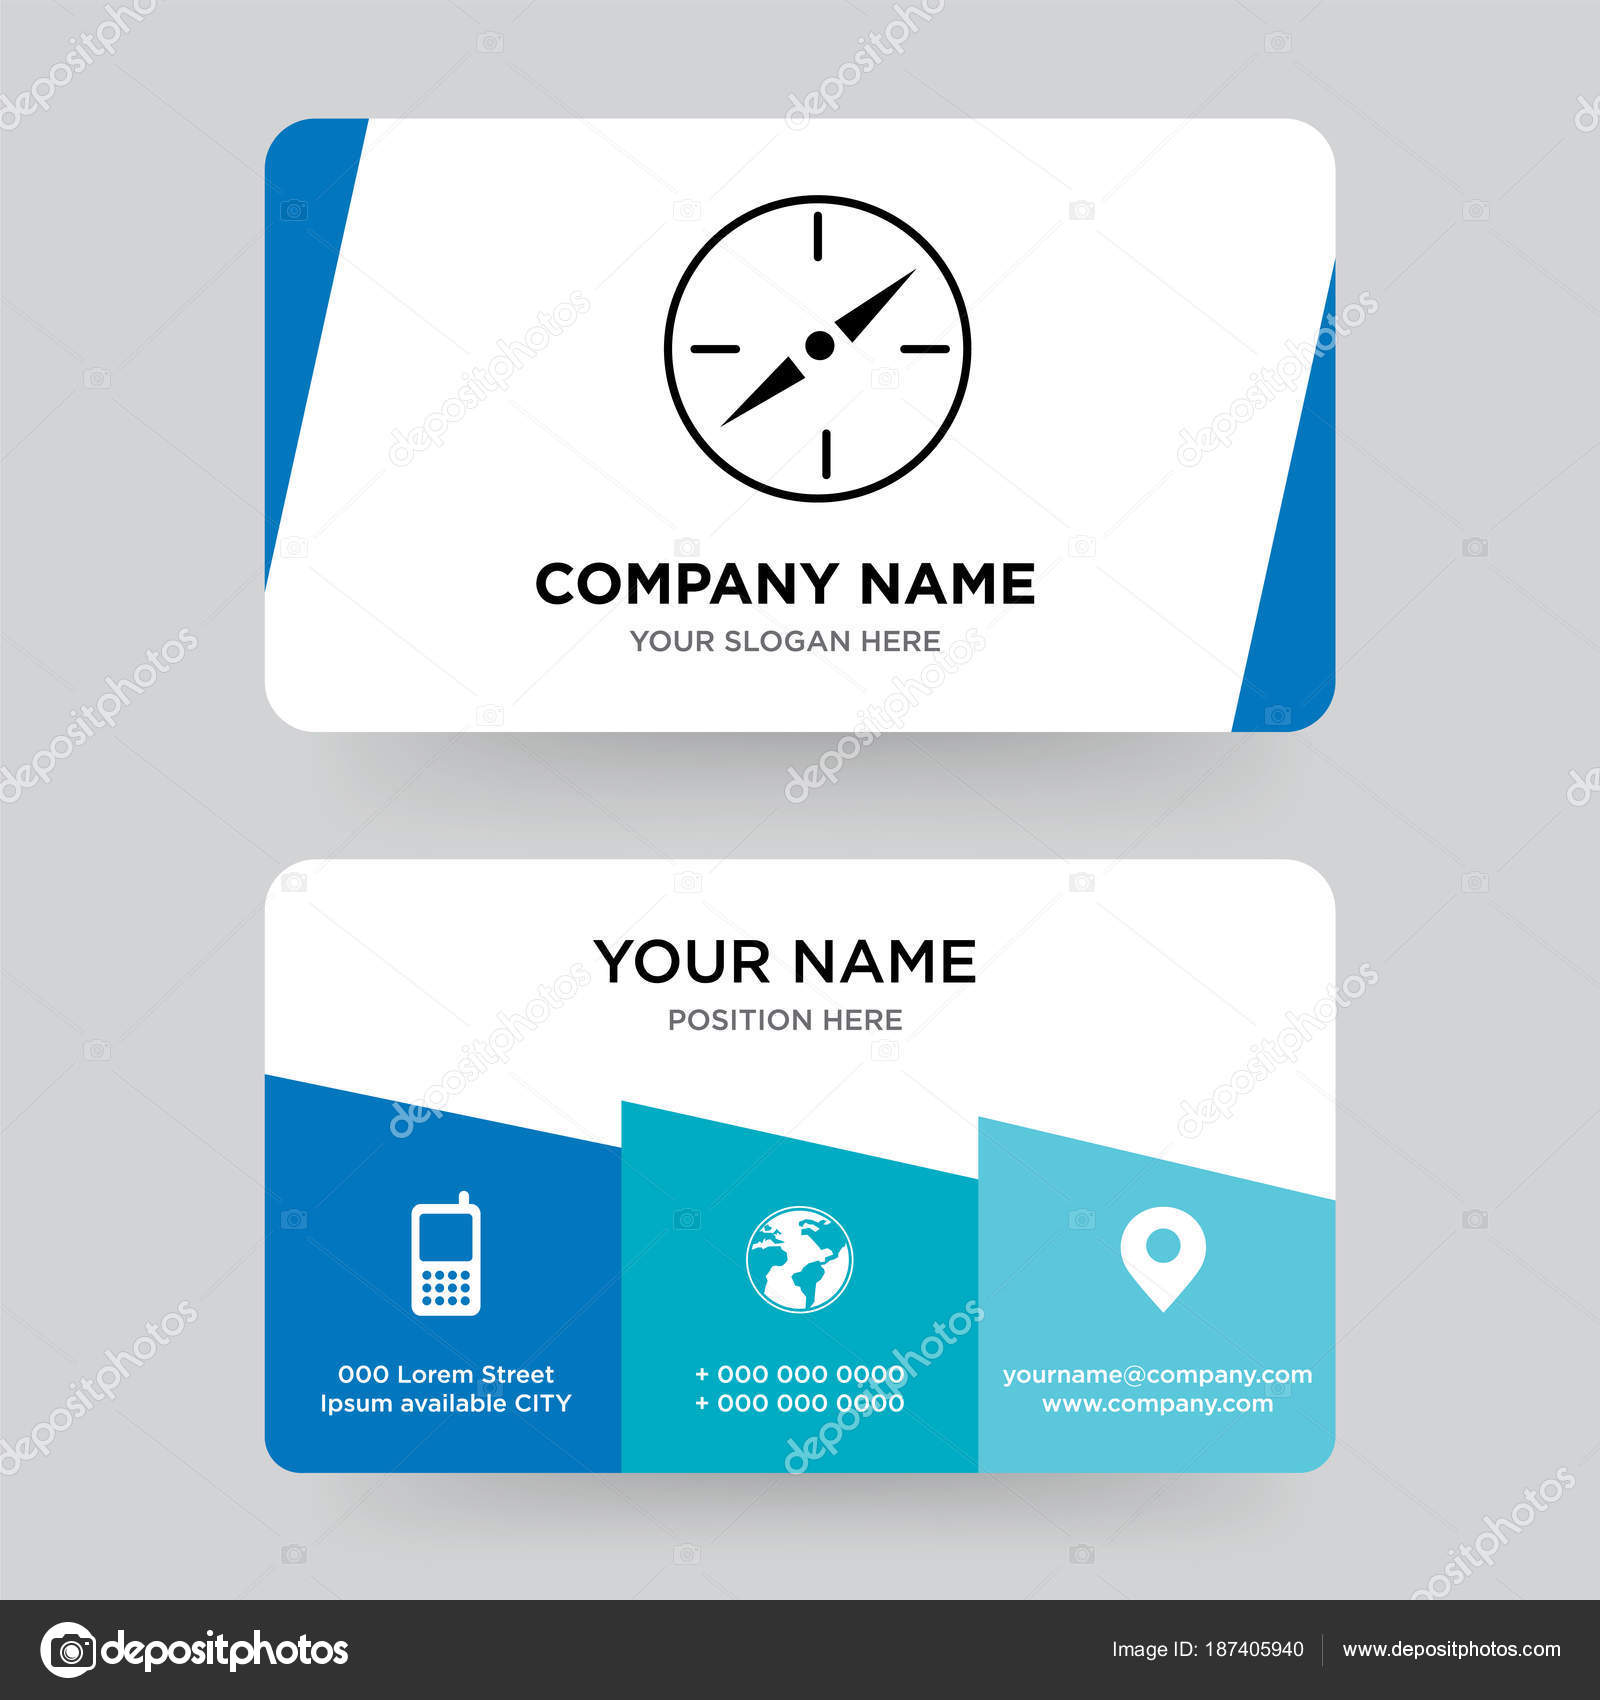 compass business card design template visiting for your company